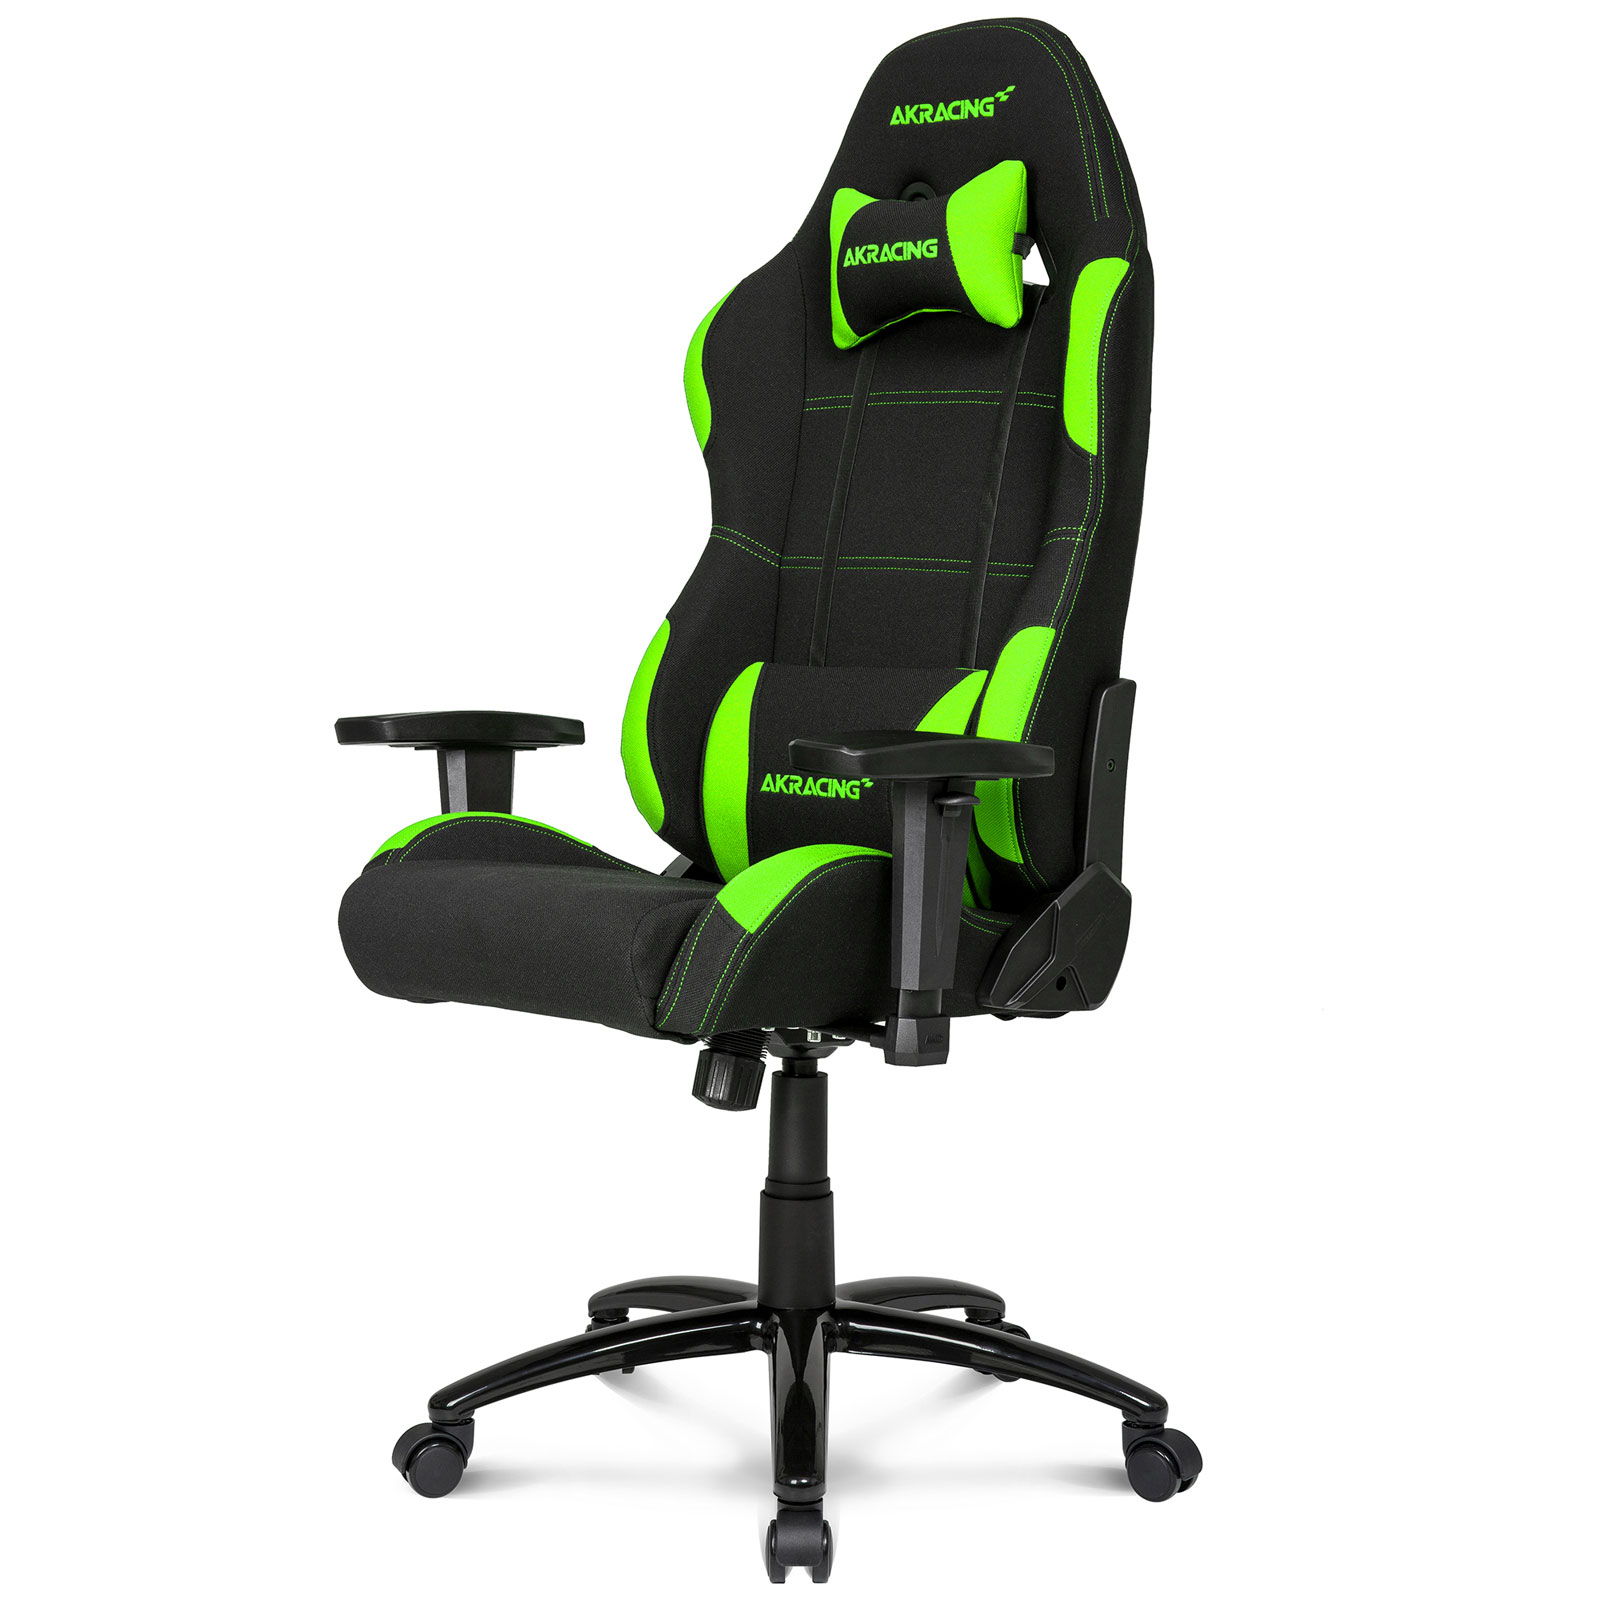 akracing gaming chair vert fauteuil gamer akracing sur. Black Bedroom Furniture Sets. Home Design Ideas